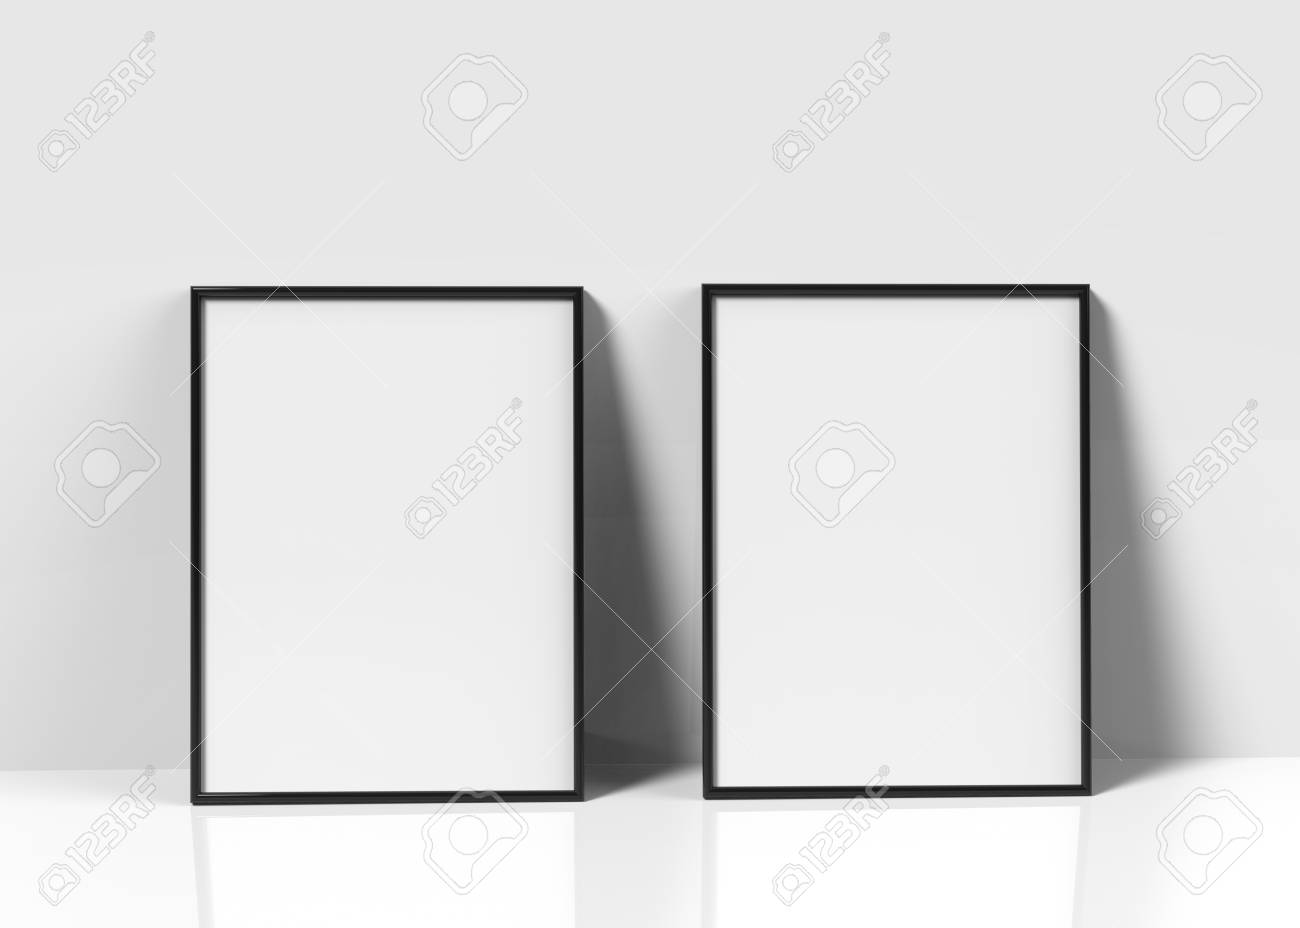 Charmant Black Picture Frames, 3d Render Thin Frames Set With Empty Space For  Decorative Uses,